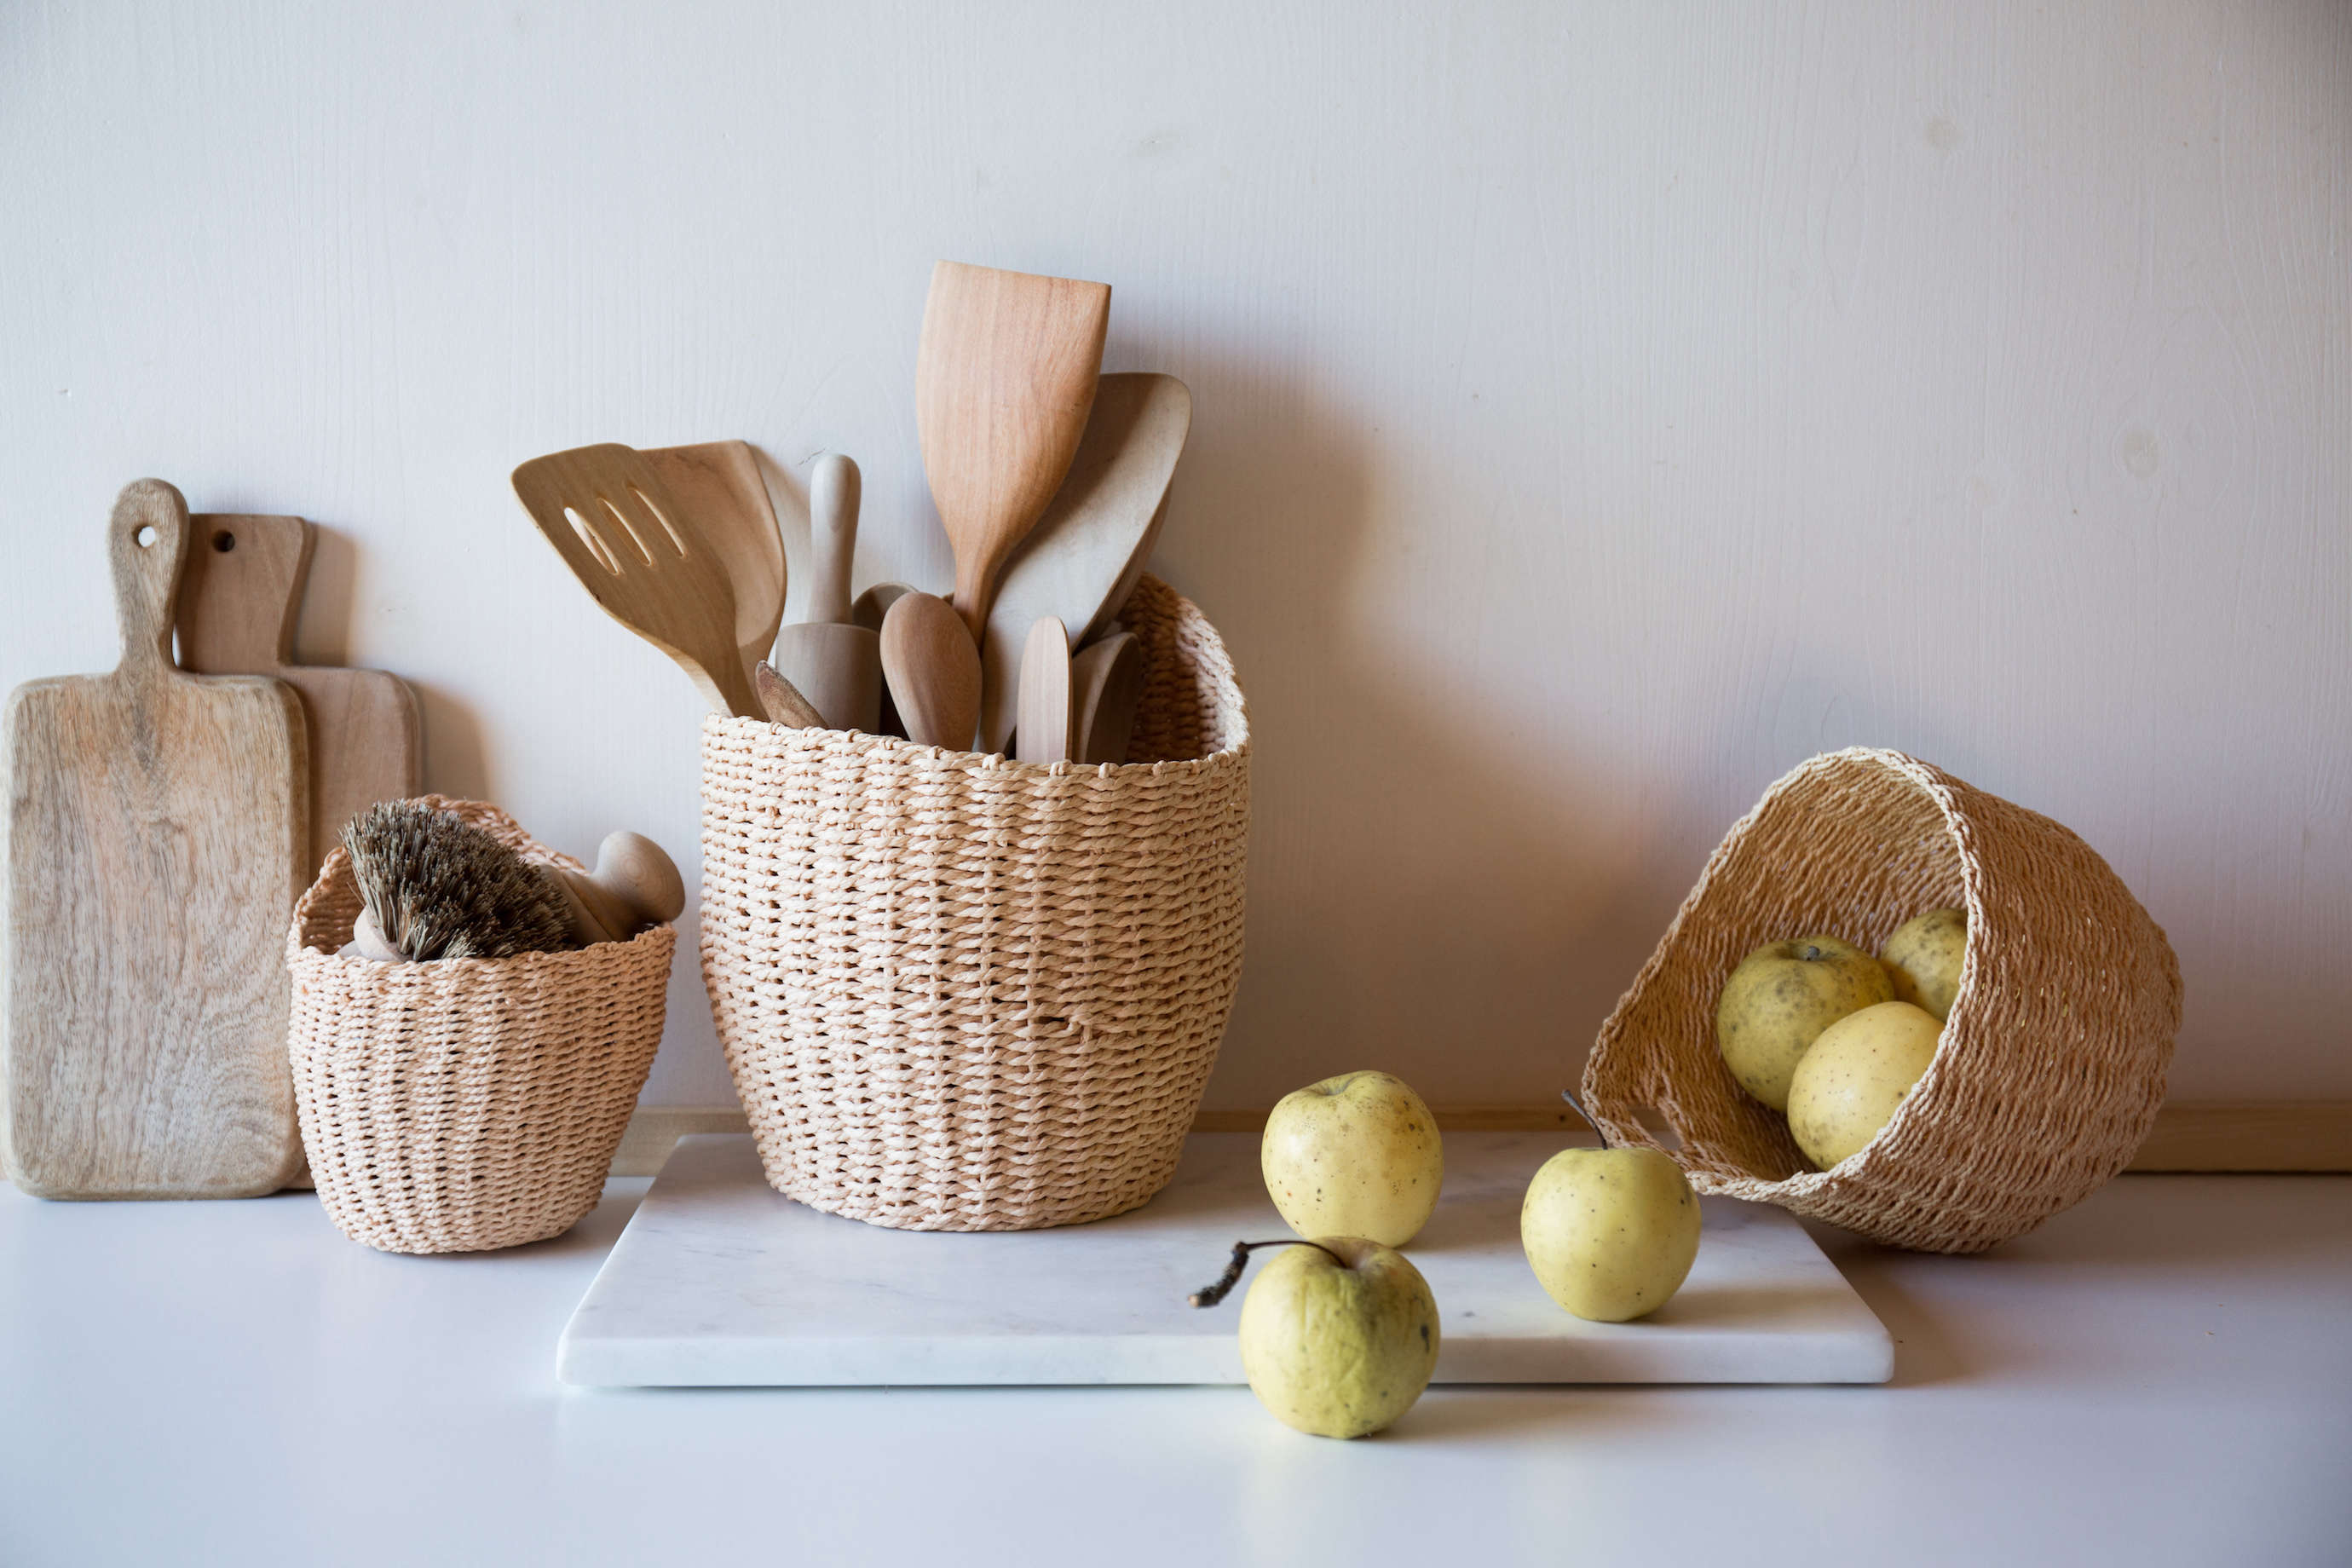 hanging baskets from Le Reperes des Belettes | Remodelista